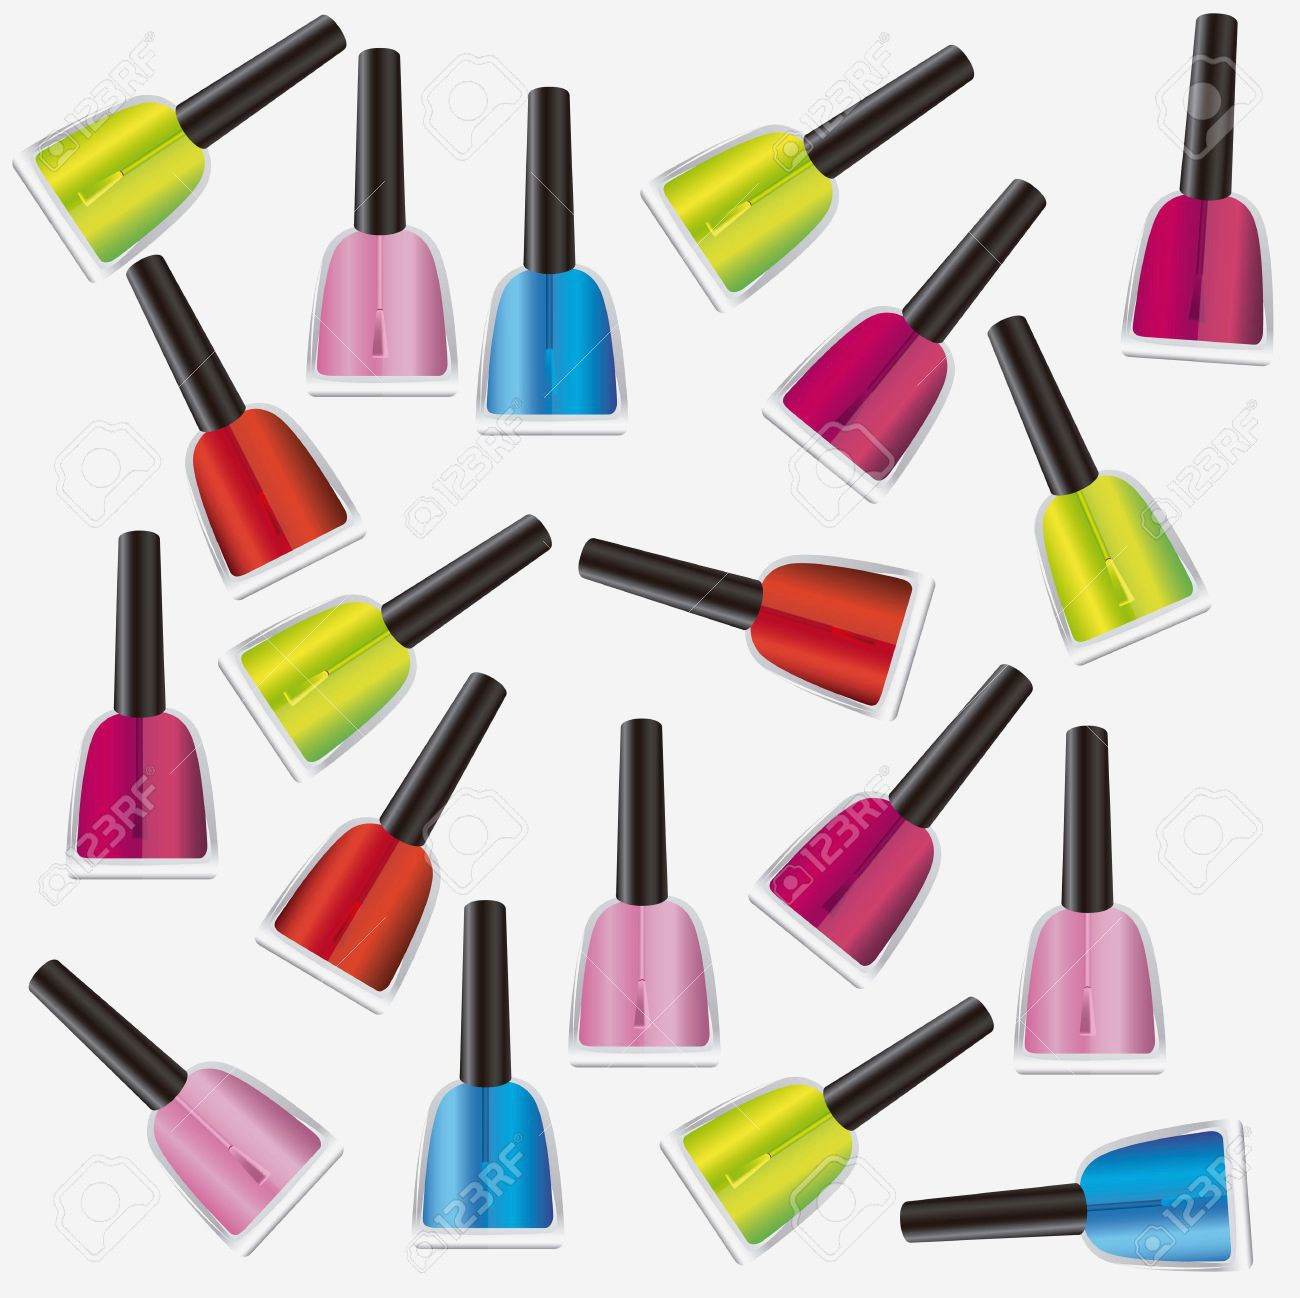 Clipart Of Nail Polish At Getdrawings Free For Personal Use